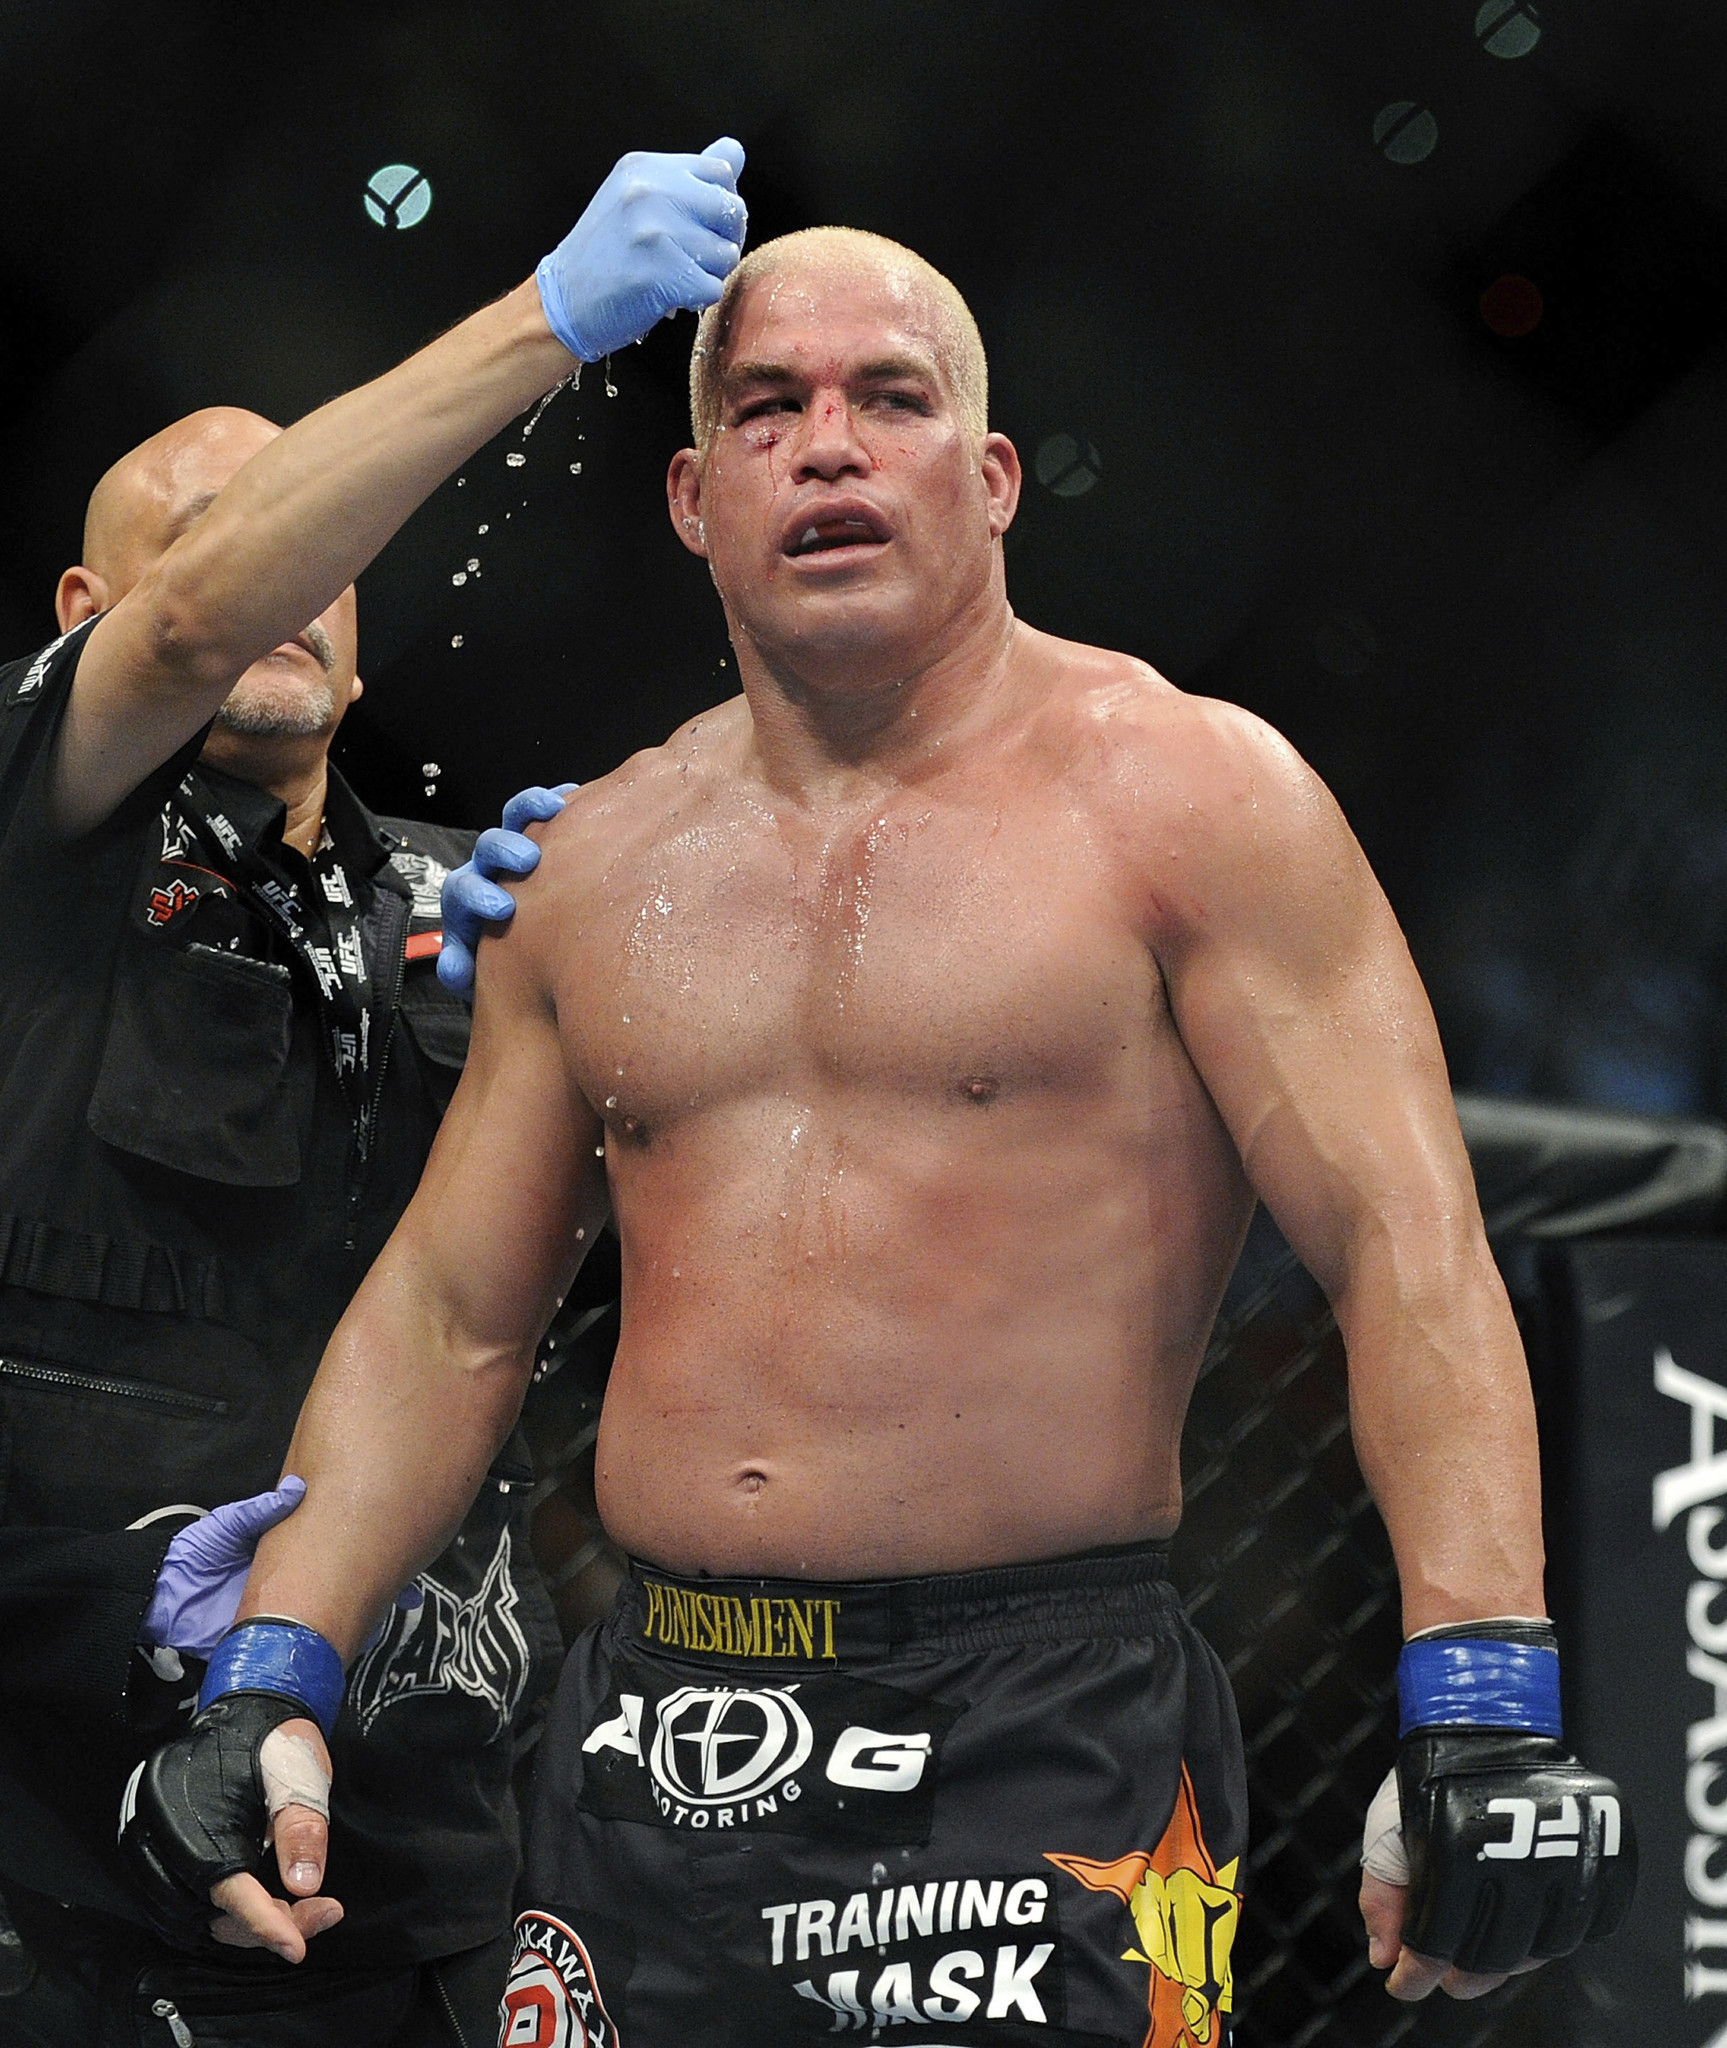 Tito Ortiz chokes out Chael Sonnen in 1st round to wrap up ...